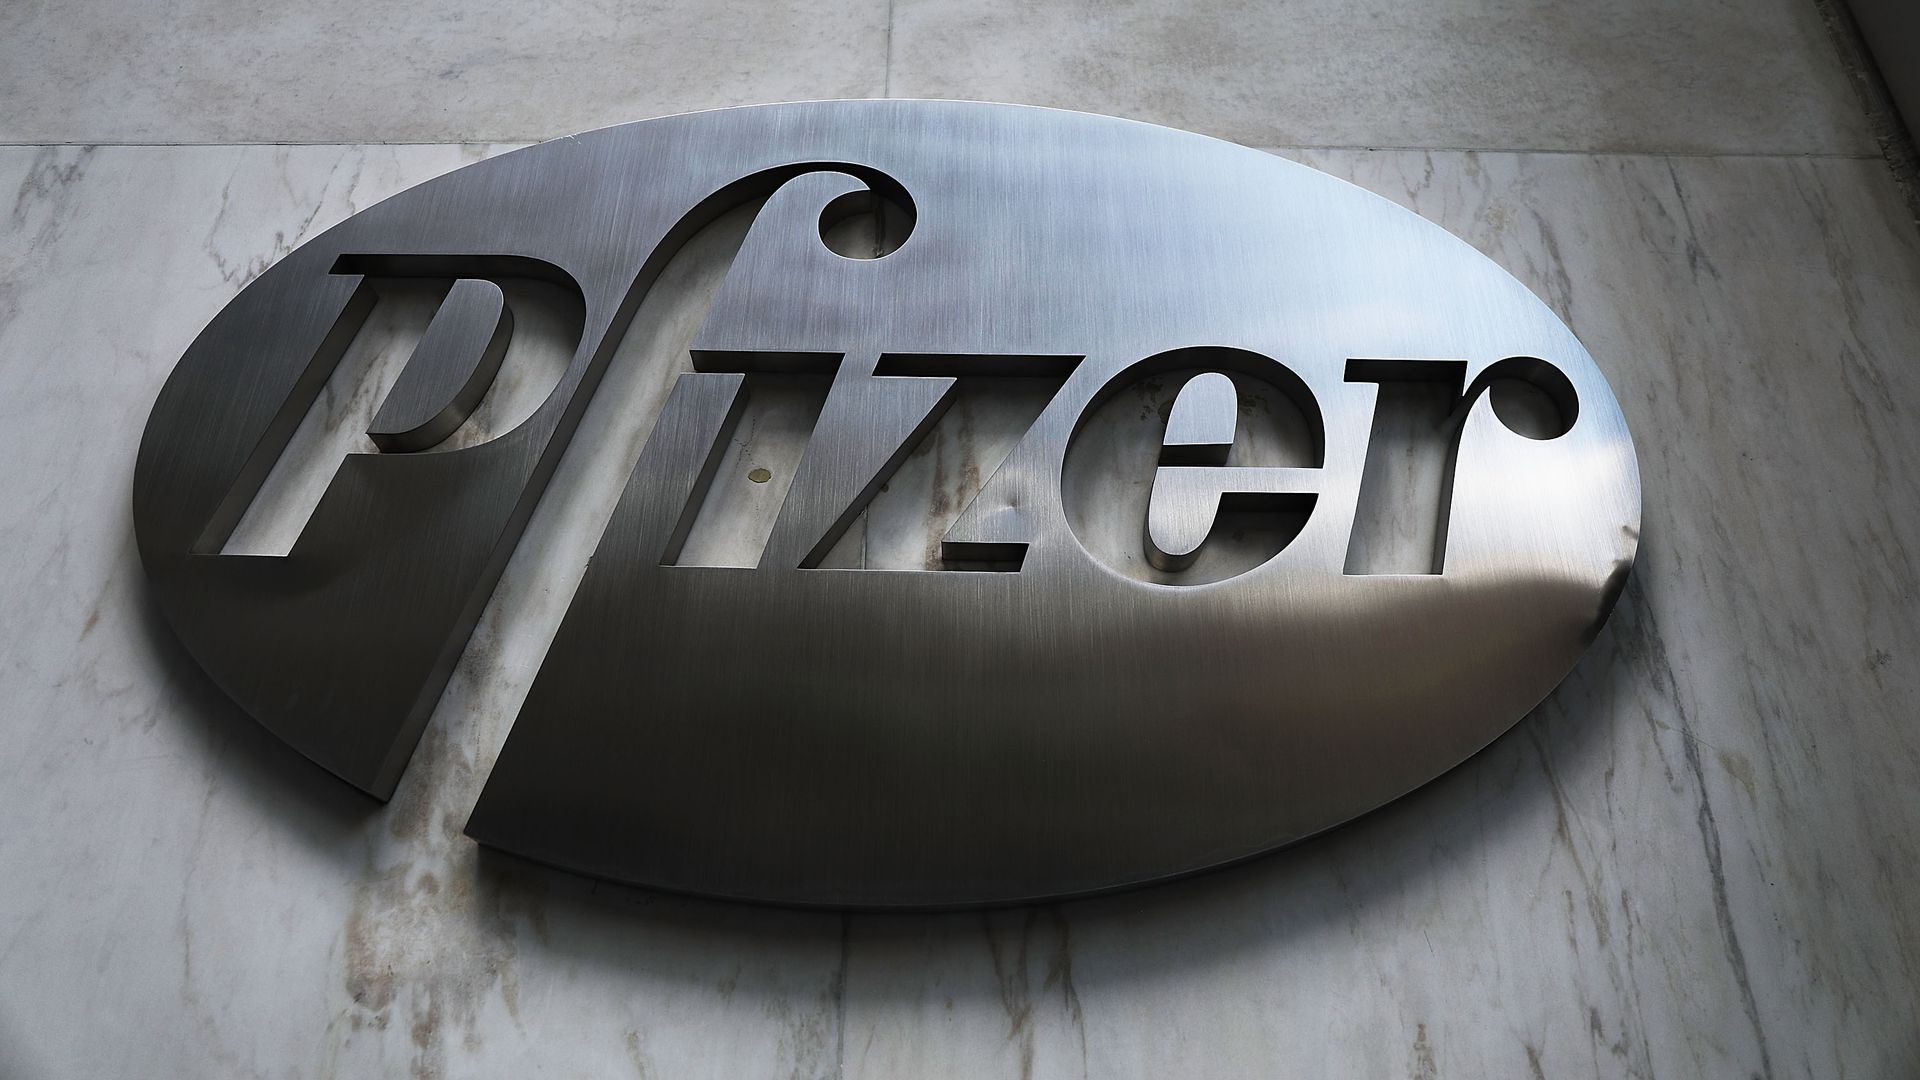 Pfizer's logo on its headquarters building.